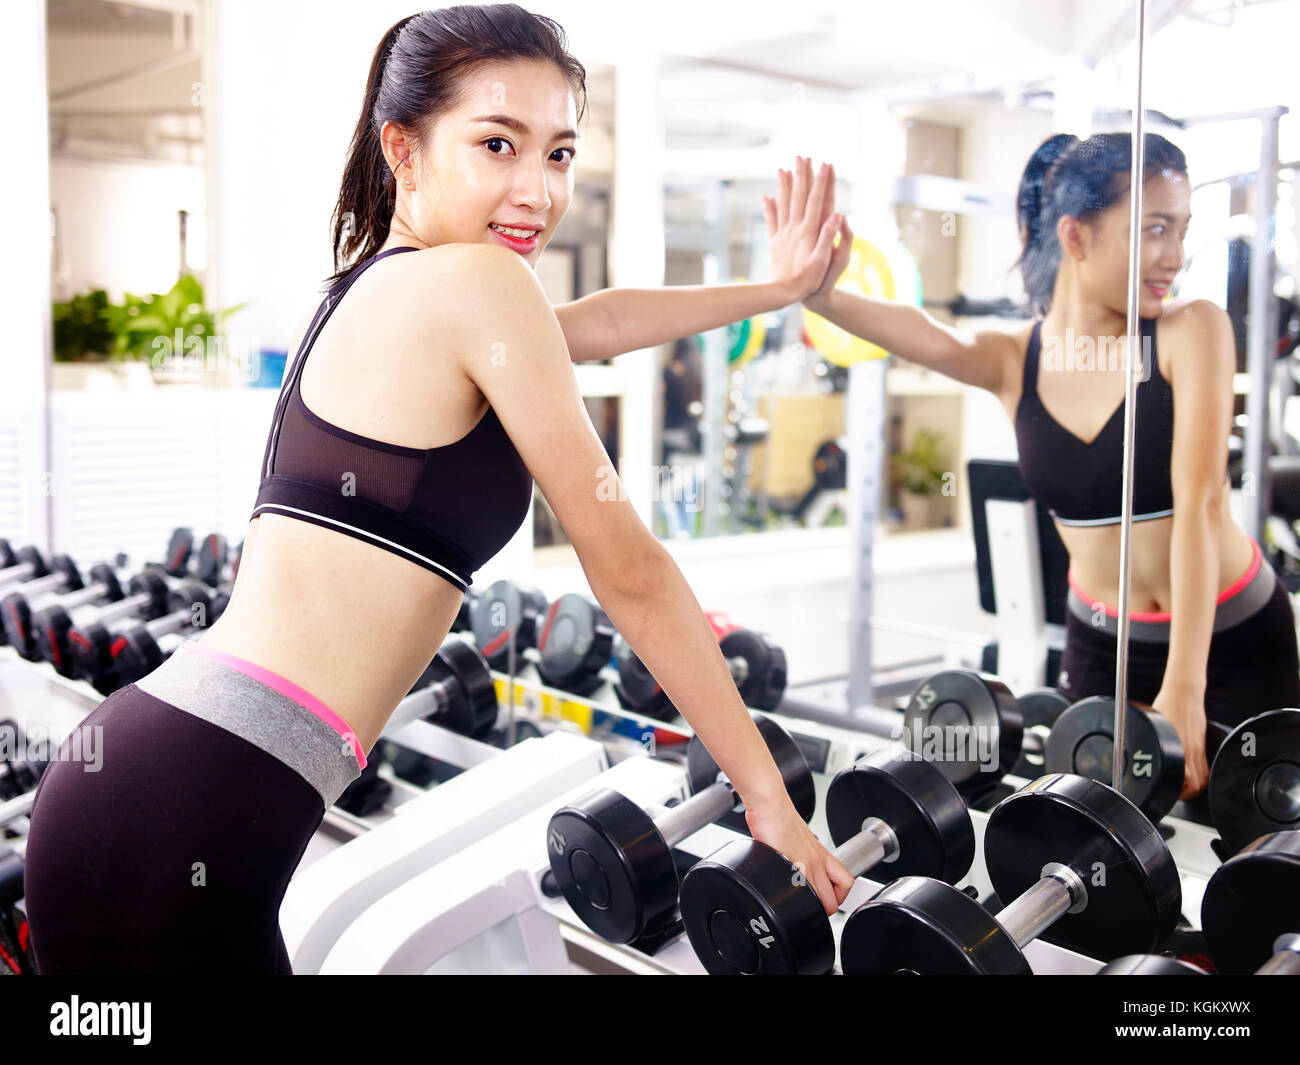 young asian woman looking at camera smiling while working out in fitness center. - Stock Image